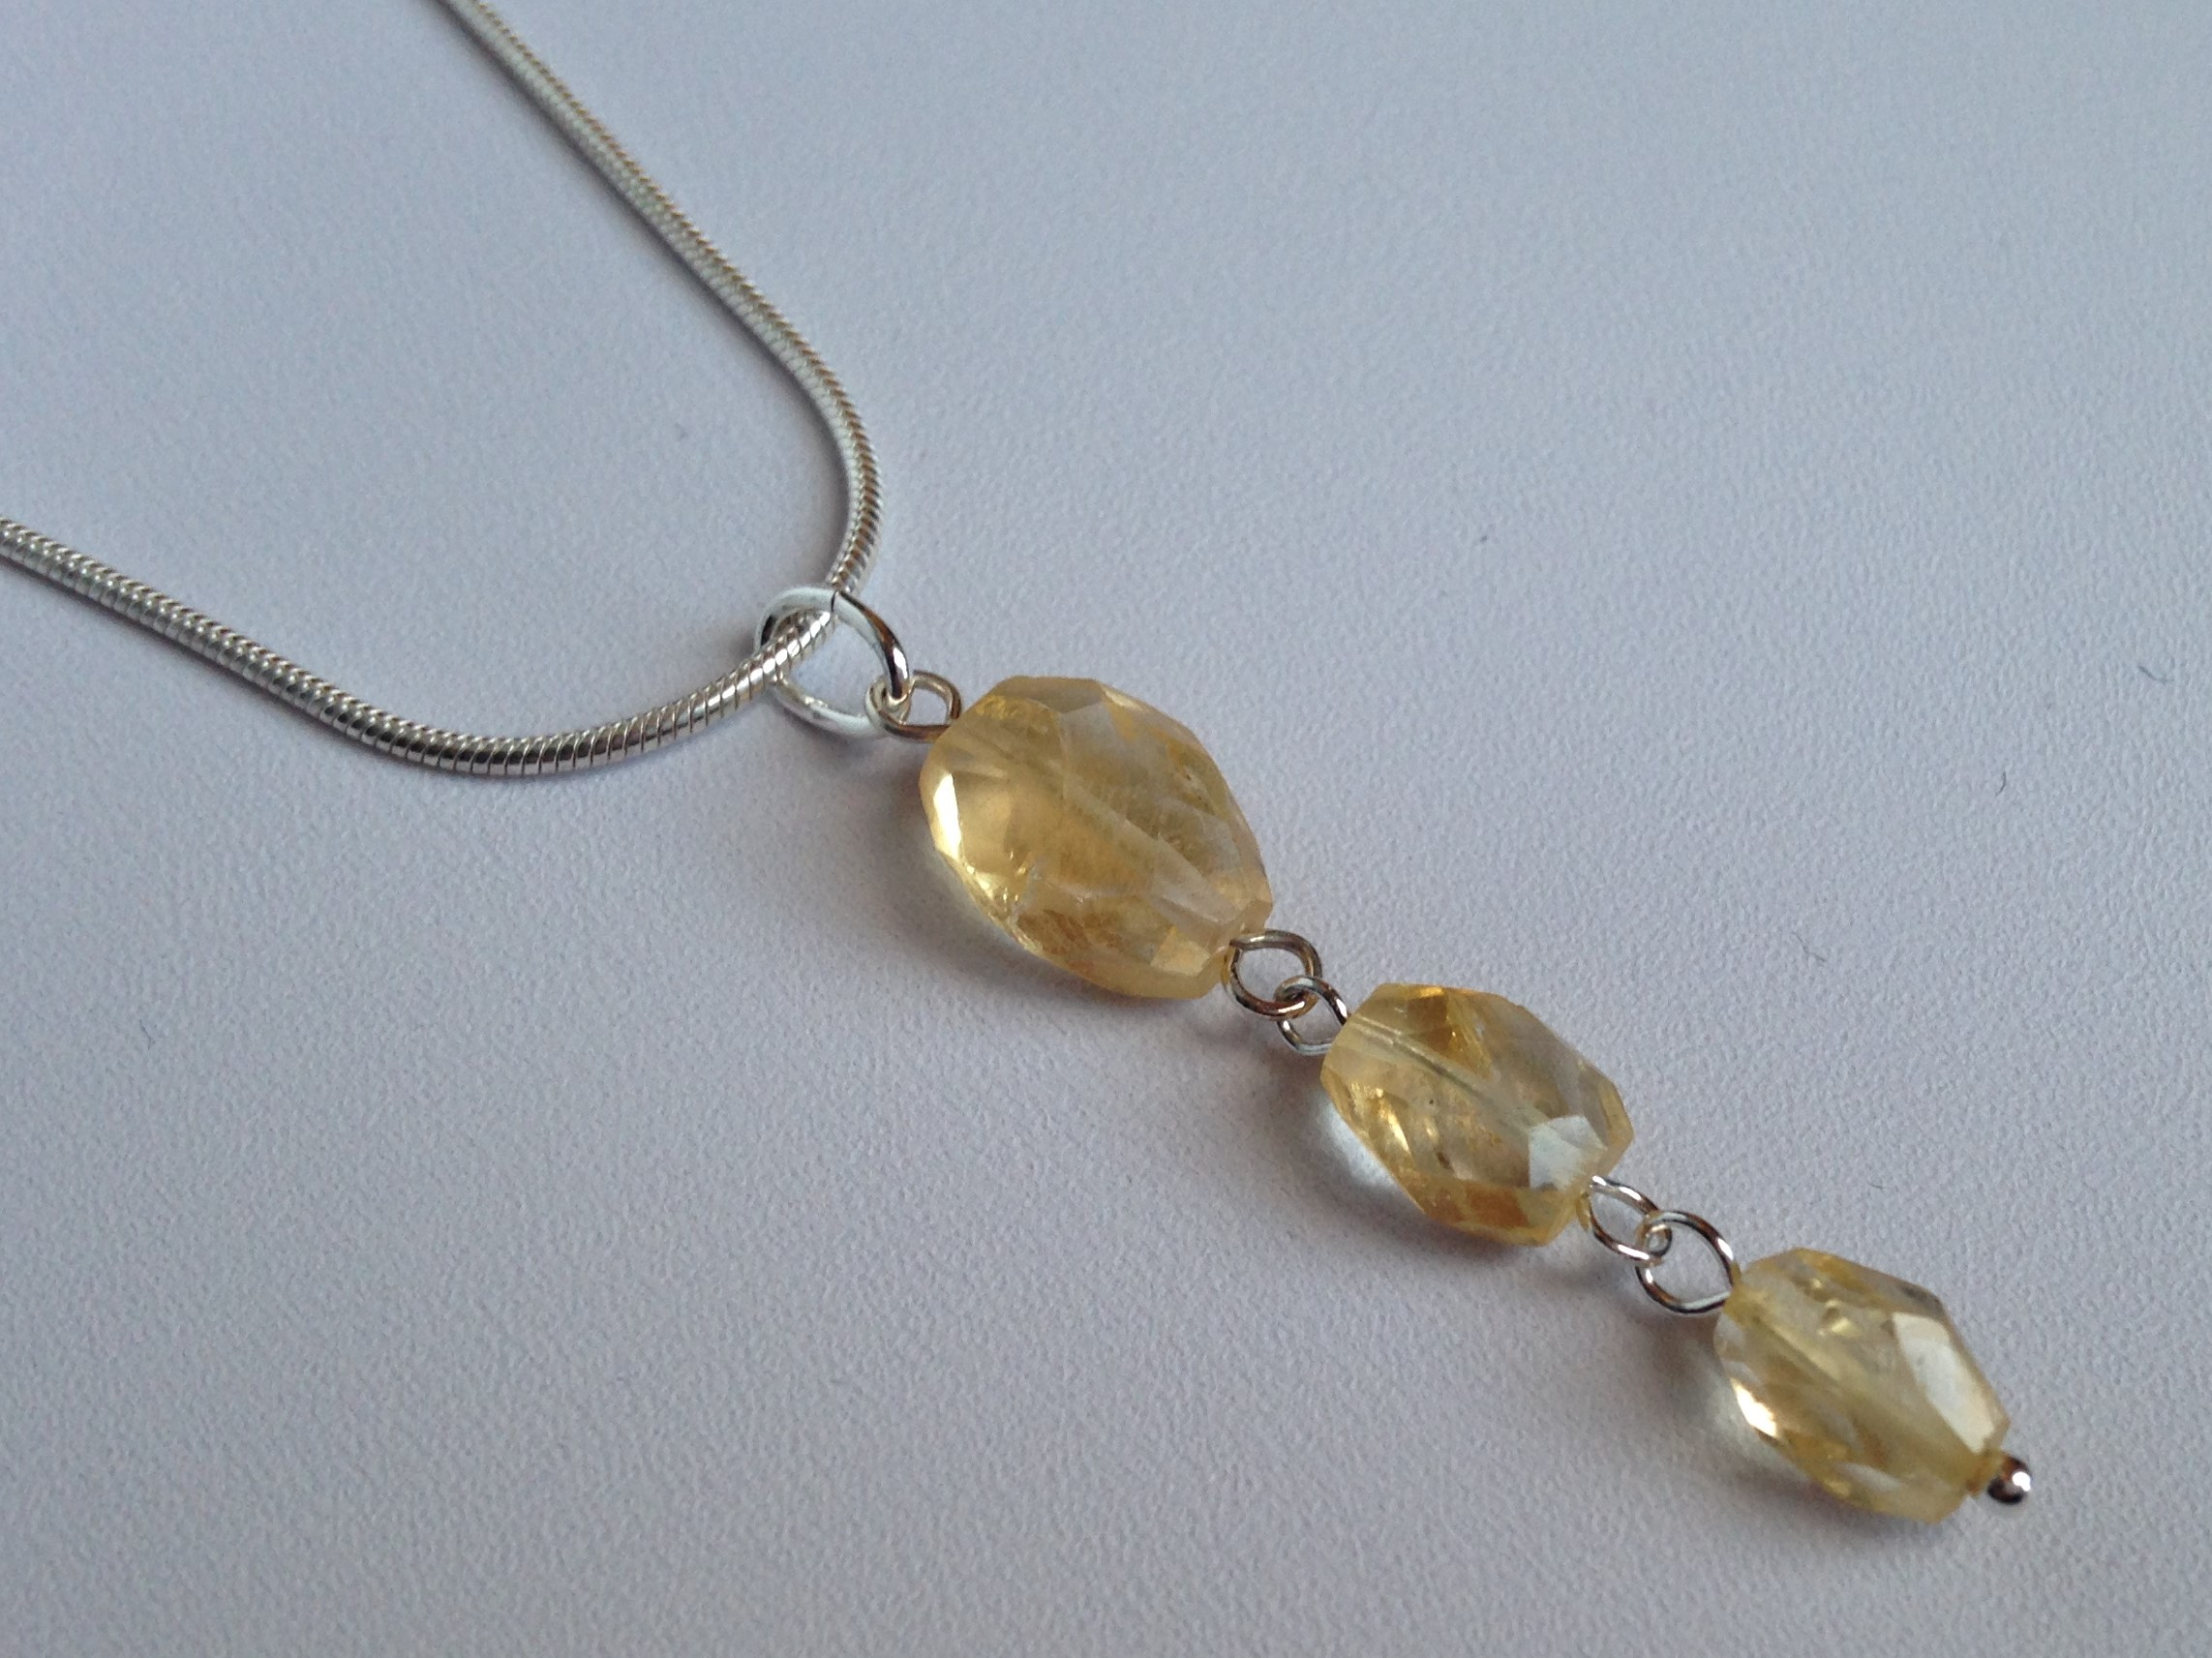 Citrine Bracelet With Extension Chain Made By Marianne